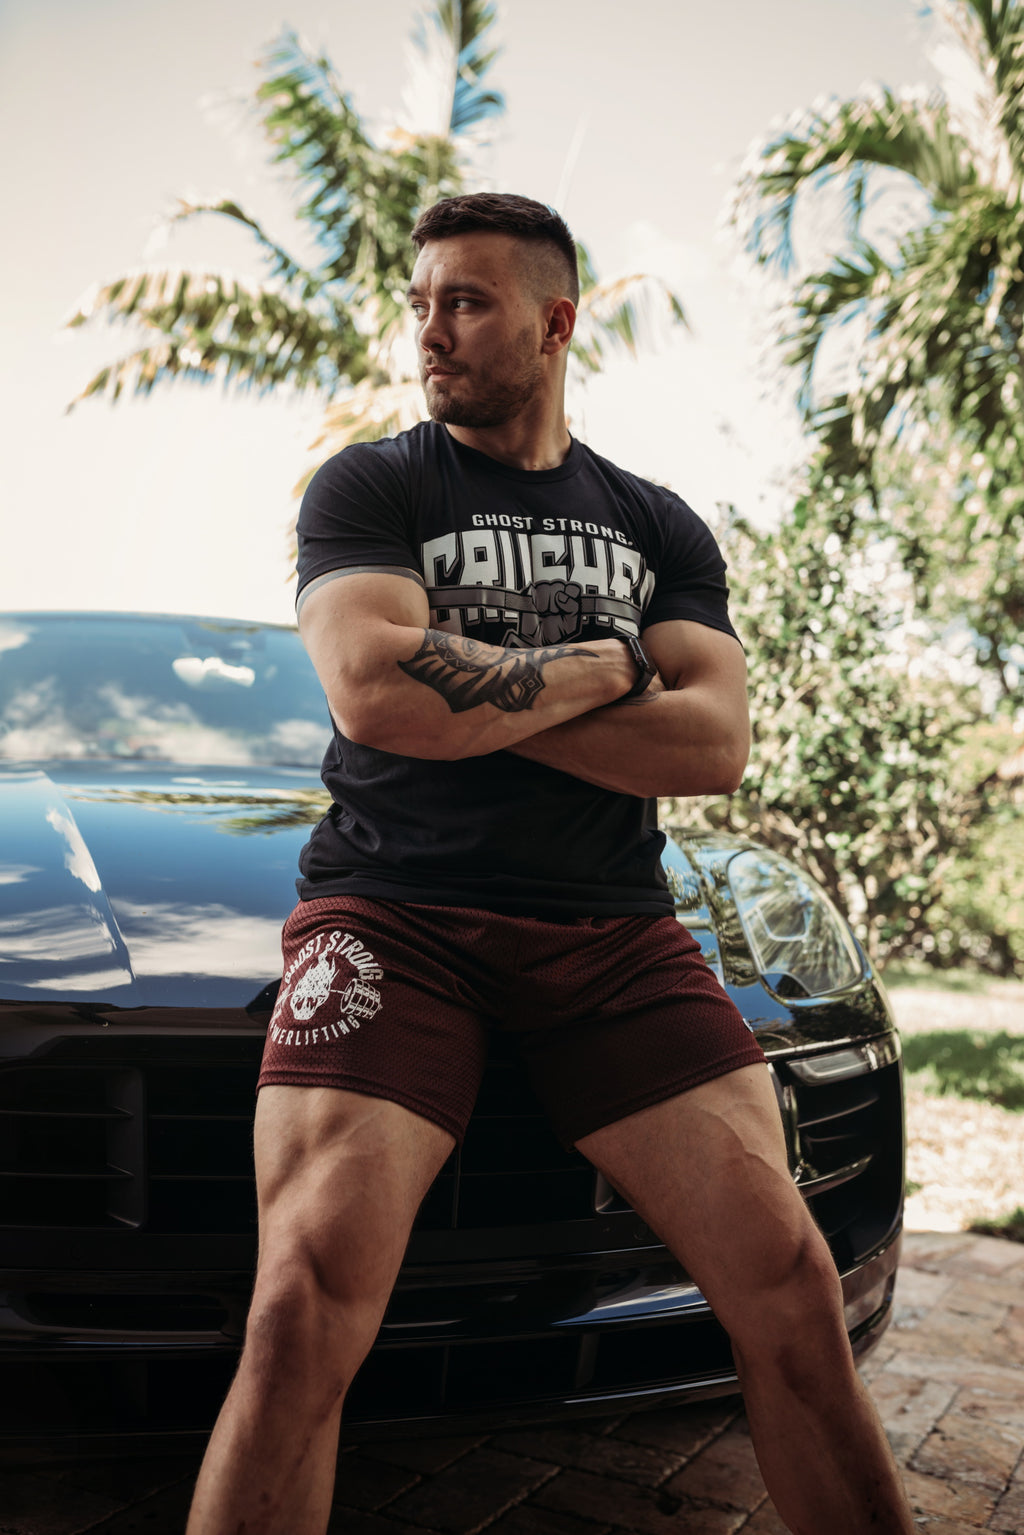 Ghost Powerlifting Champion Shorts